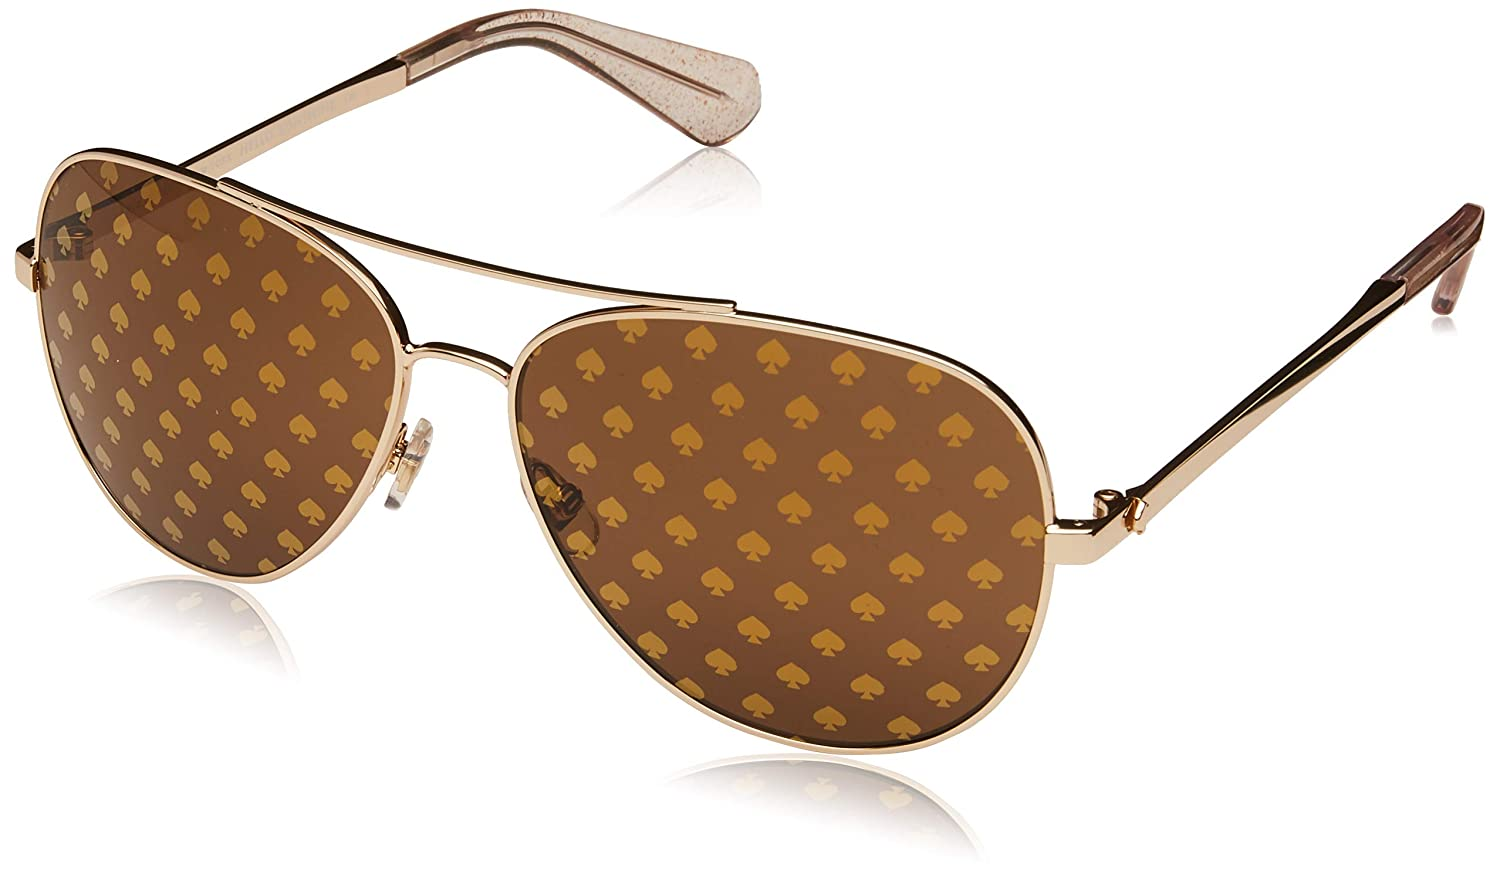 cebb69266e Amazon.com  Kate Spade Women s Avaline2 s Aviator Sunglasses Gold 58 mm   Clothing